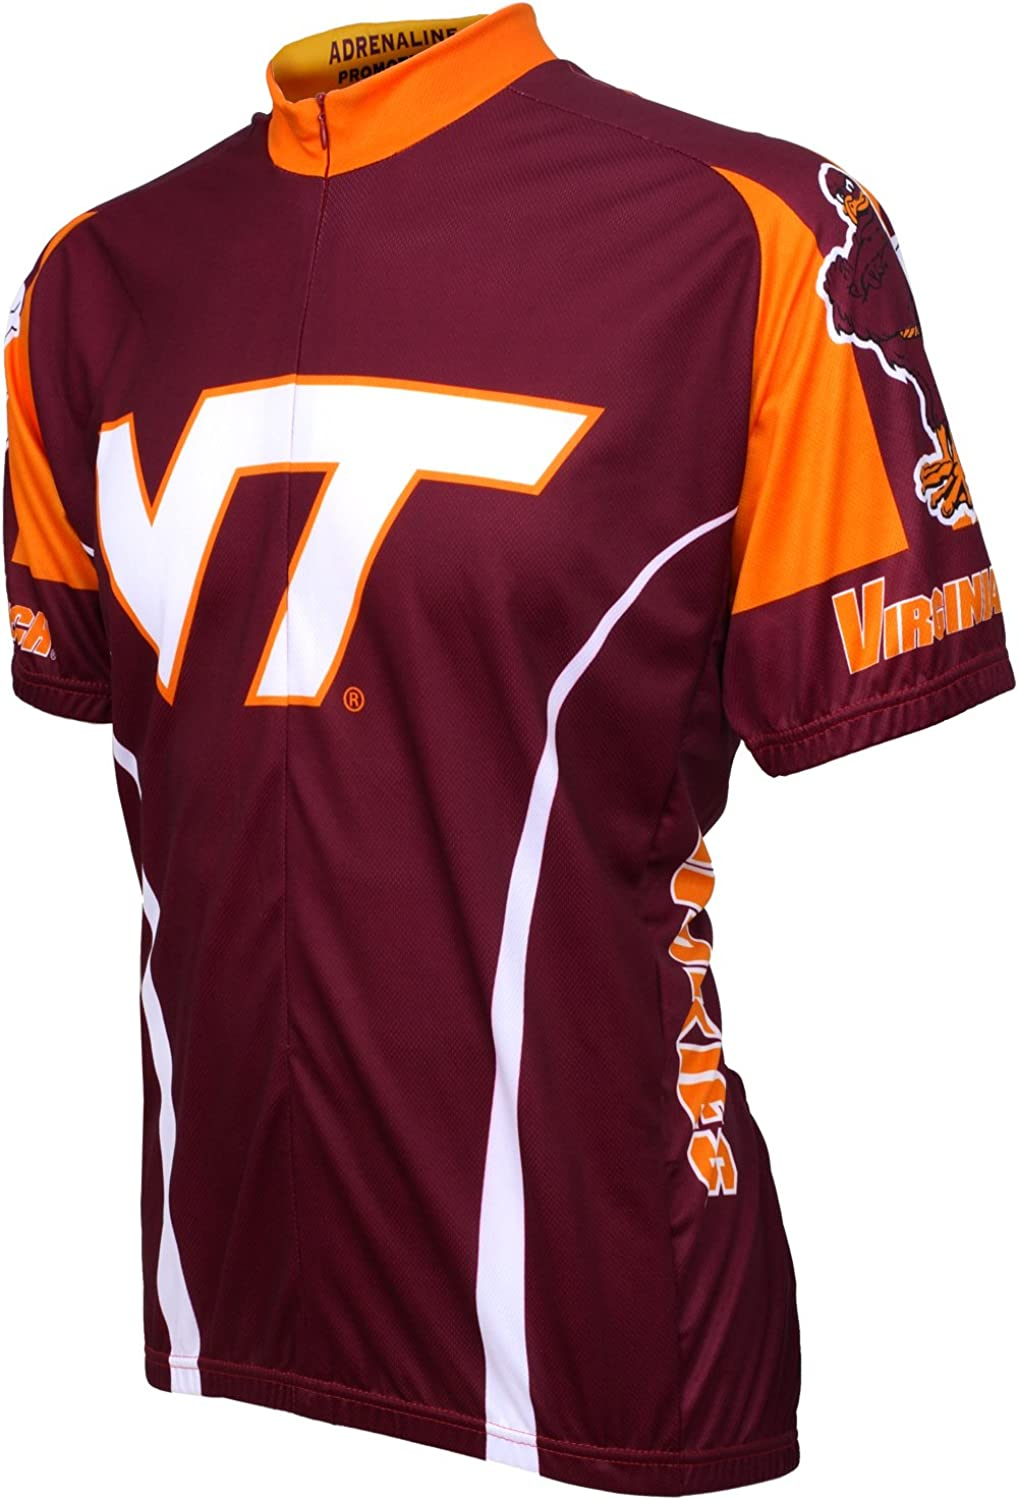 Orange Adrenaline Promotions Tennessee Cycling Jersey